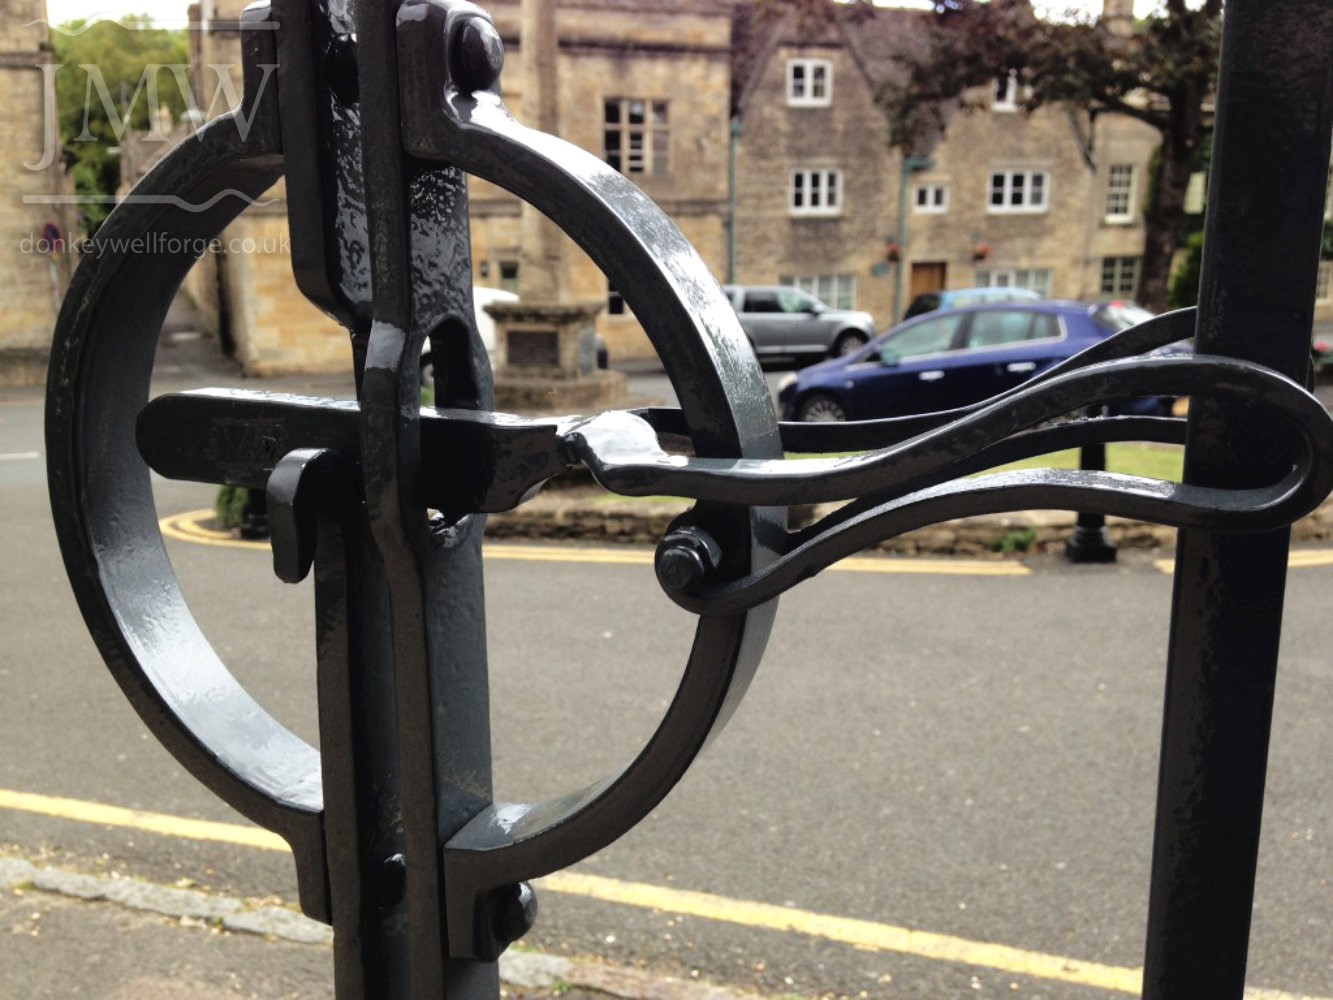 ornate-leaves-gates-cotswolds-blacksmith-detail-donkeywell-forge